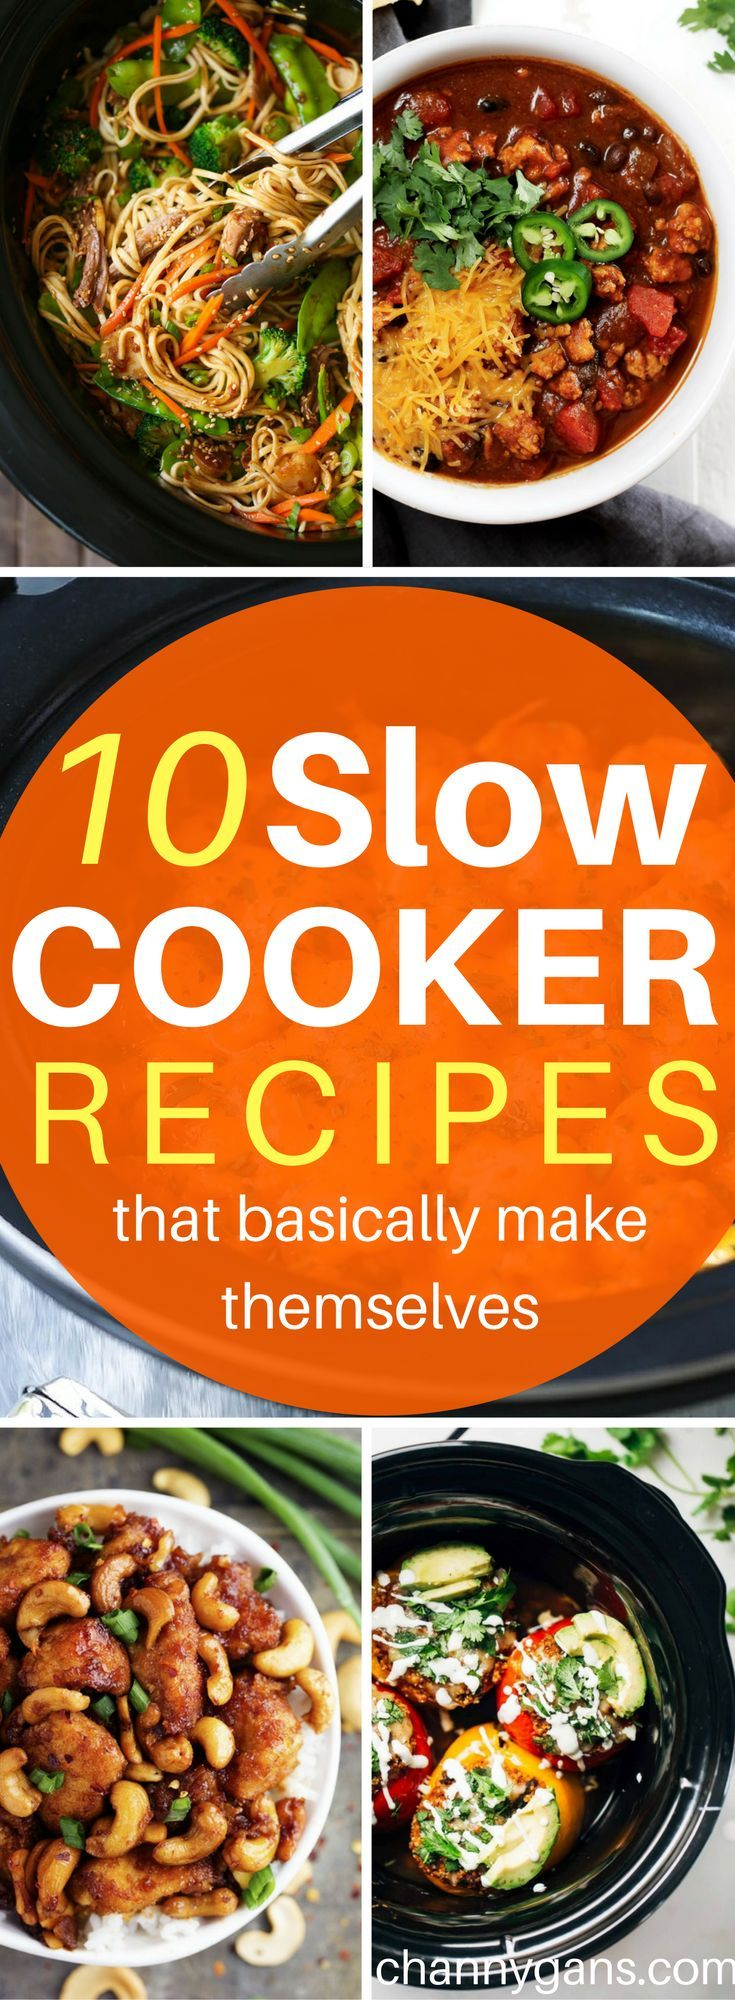 These slow cooker recipes are AWESOME! Now I can easily make delicious slow cooker meals! Definitely repinning! #slowcooker #recipes